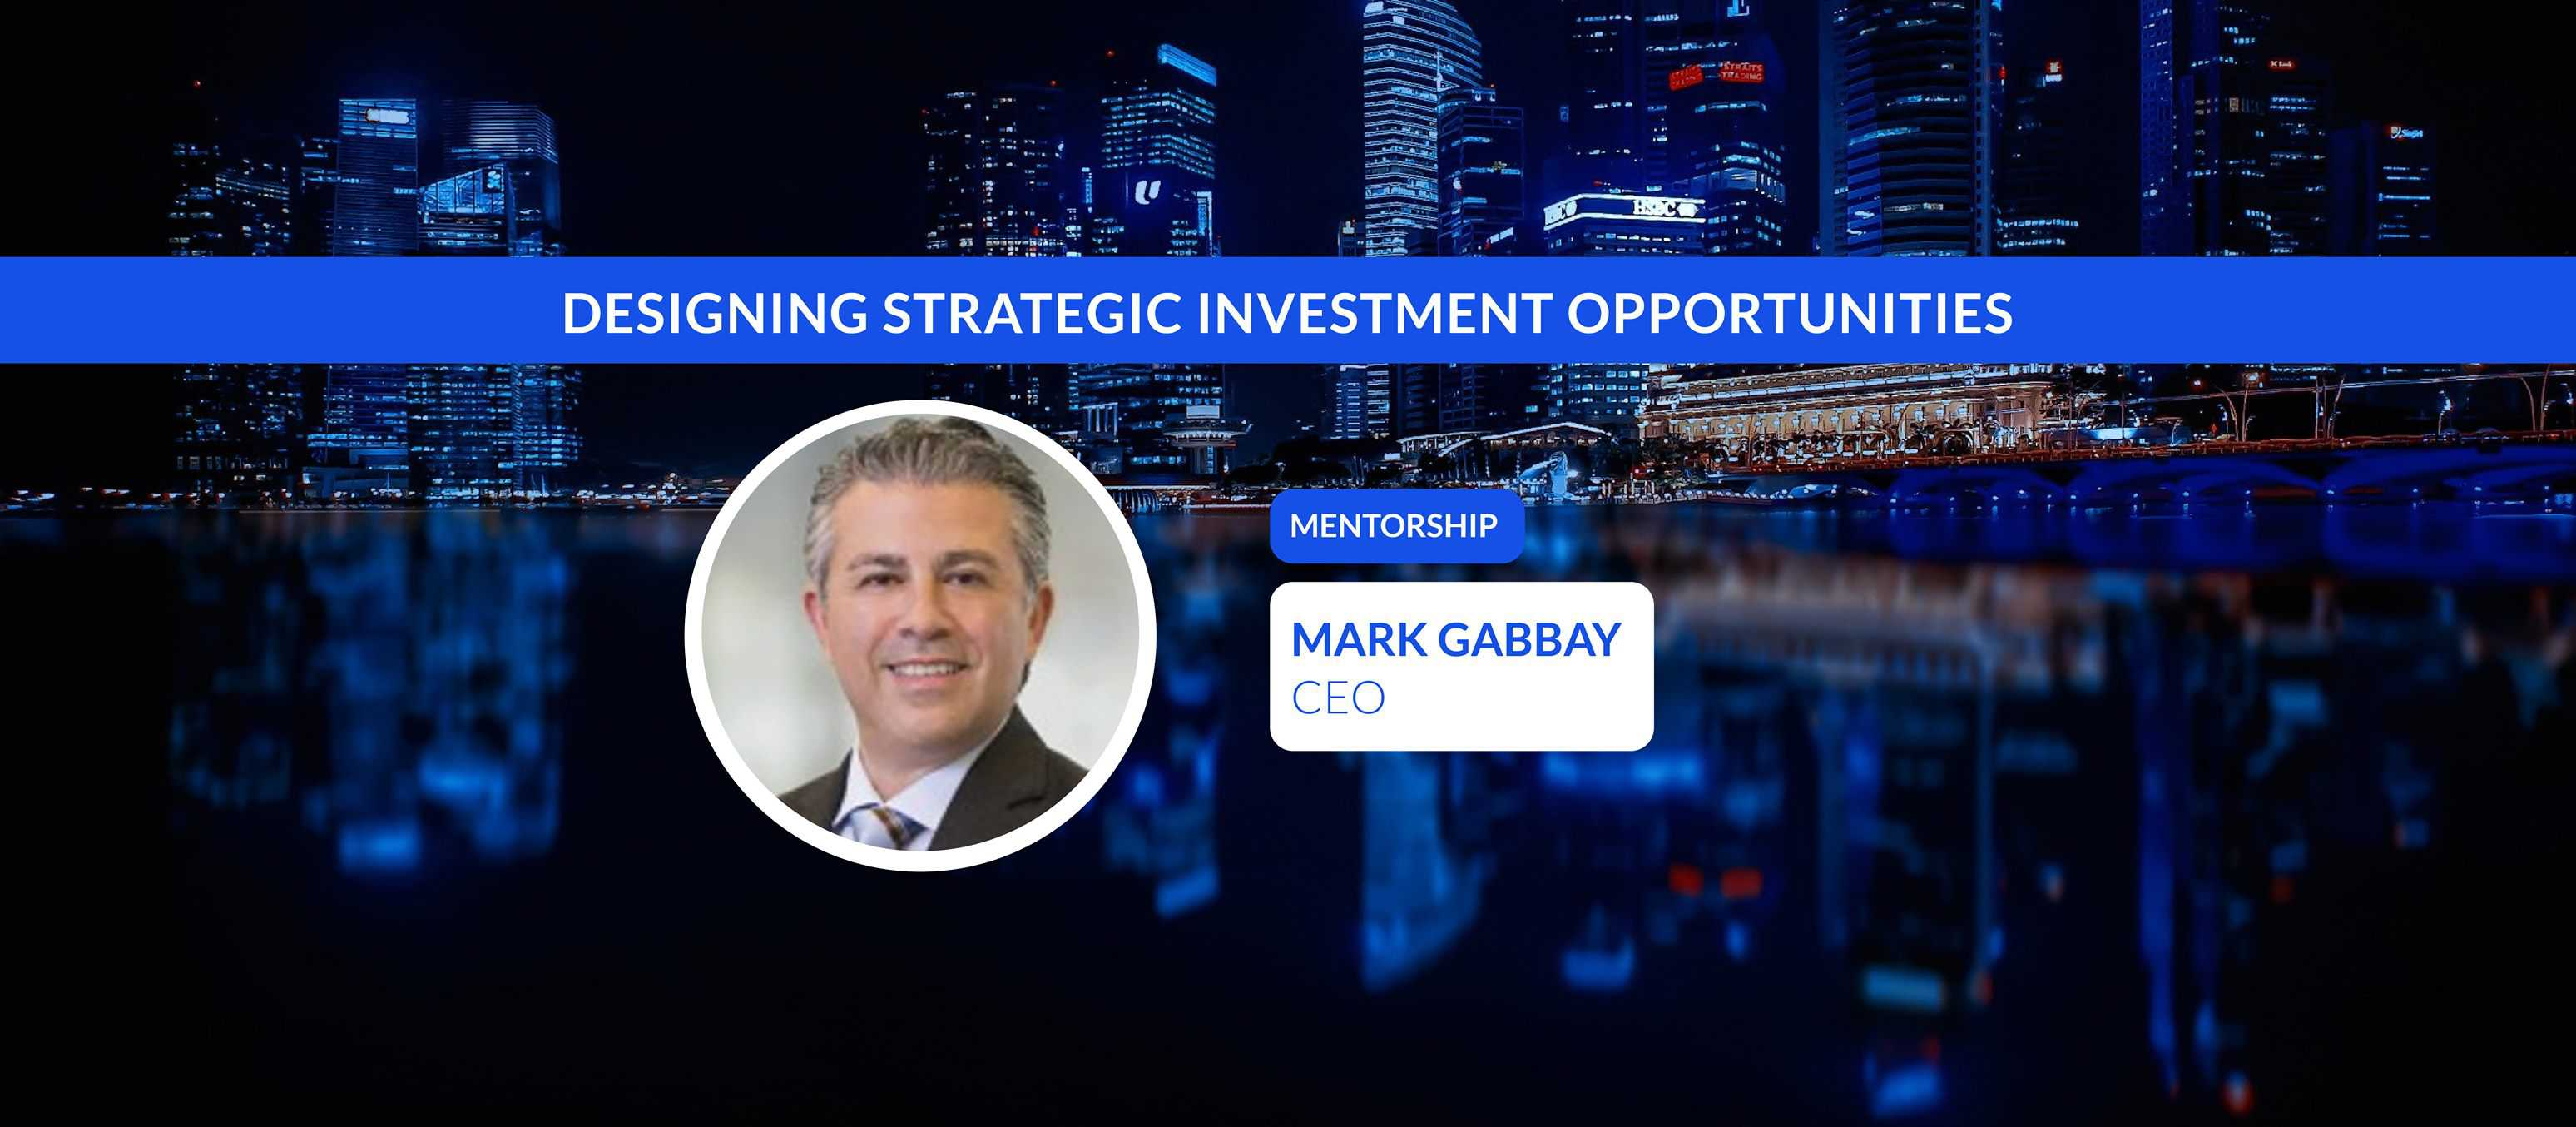 Designing Strategic Investment Opportunities with CEO of LaSalle Investment